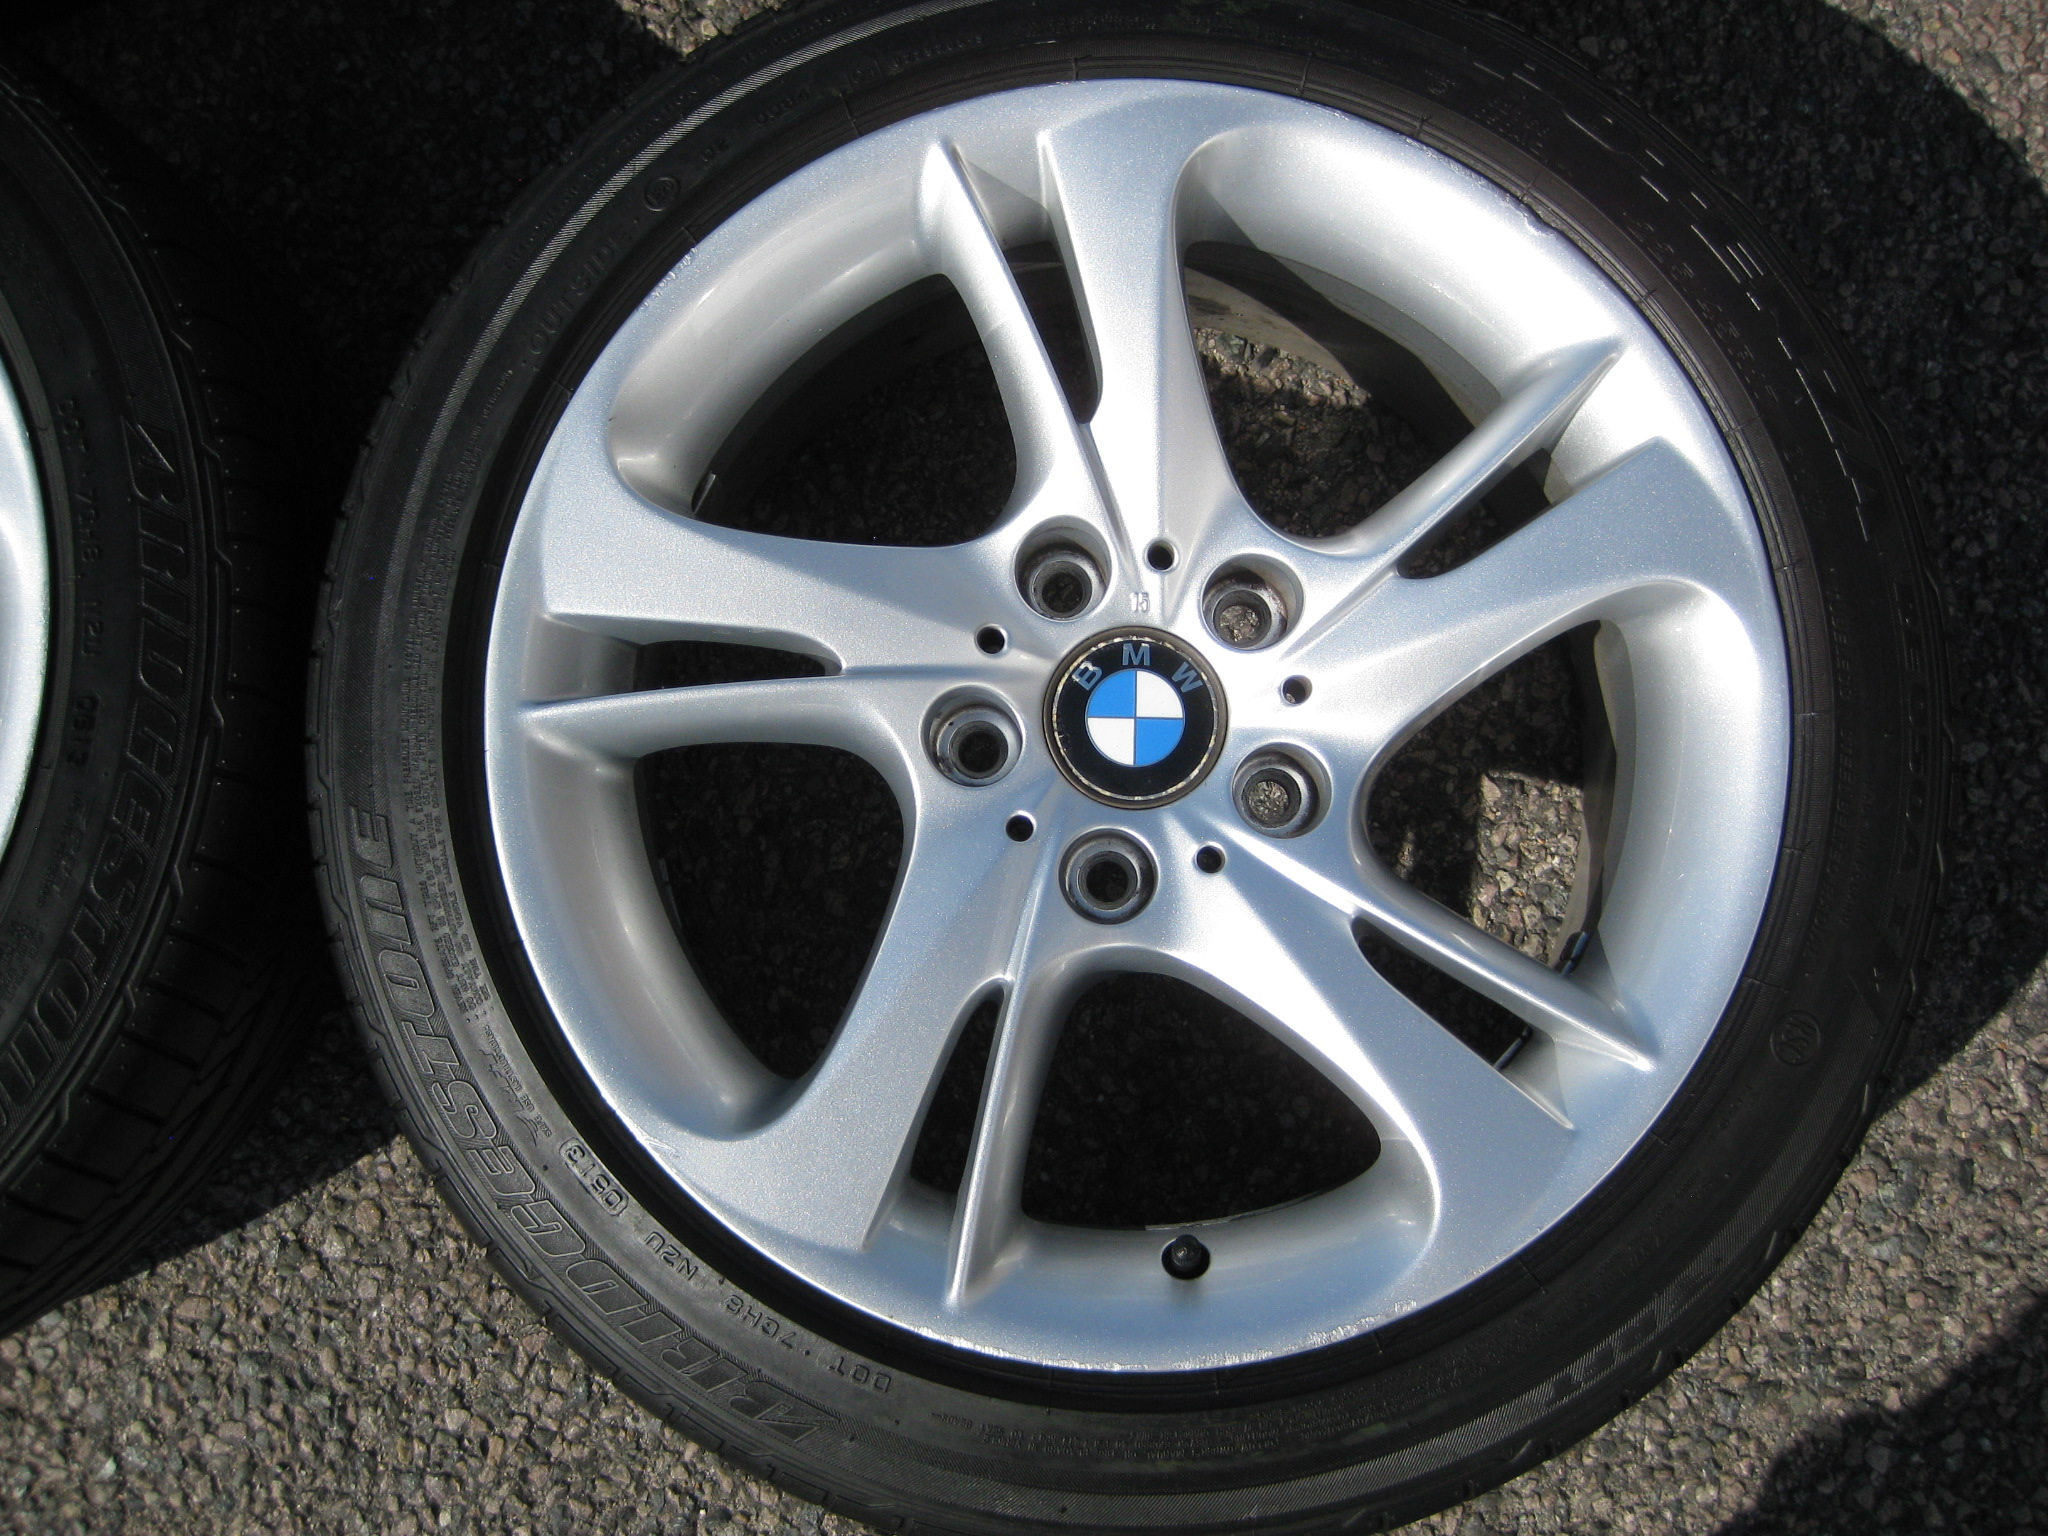 "USED 17"" GENUINE BMW STYLE 292 E89 Z4 TURBINE SPOKE ALLOY WHEELS, WIDE REAR, VGC INC GOOD RUNFLATS TYRES"